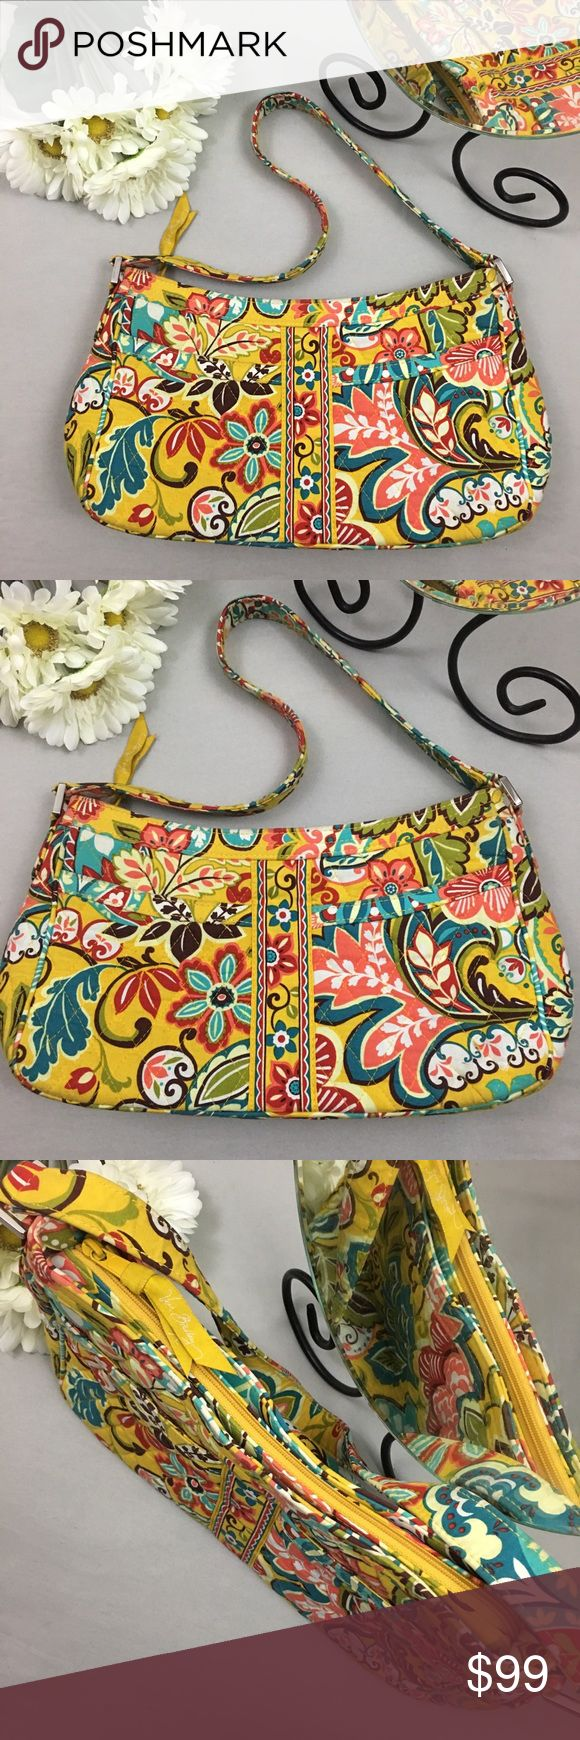 """Vera Bradley Spring Floral Zip Up Handbag *Condition: Excellent. No holes or stains. Most minimal wear to interior. *Zip closure *3.5"""" deep *2 Front pouch pockets *1 interior zip & 2 pouch pockets  *Stored in non-smoking per free home Vera Bradley Bags Shoulder Bags"""